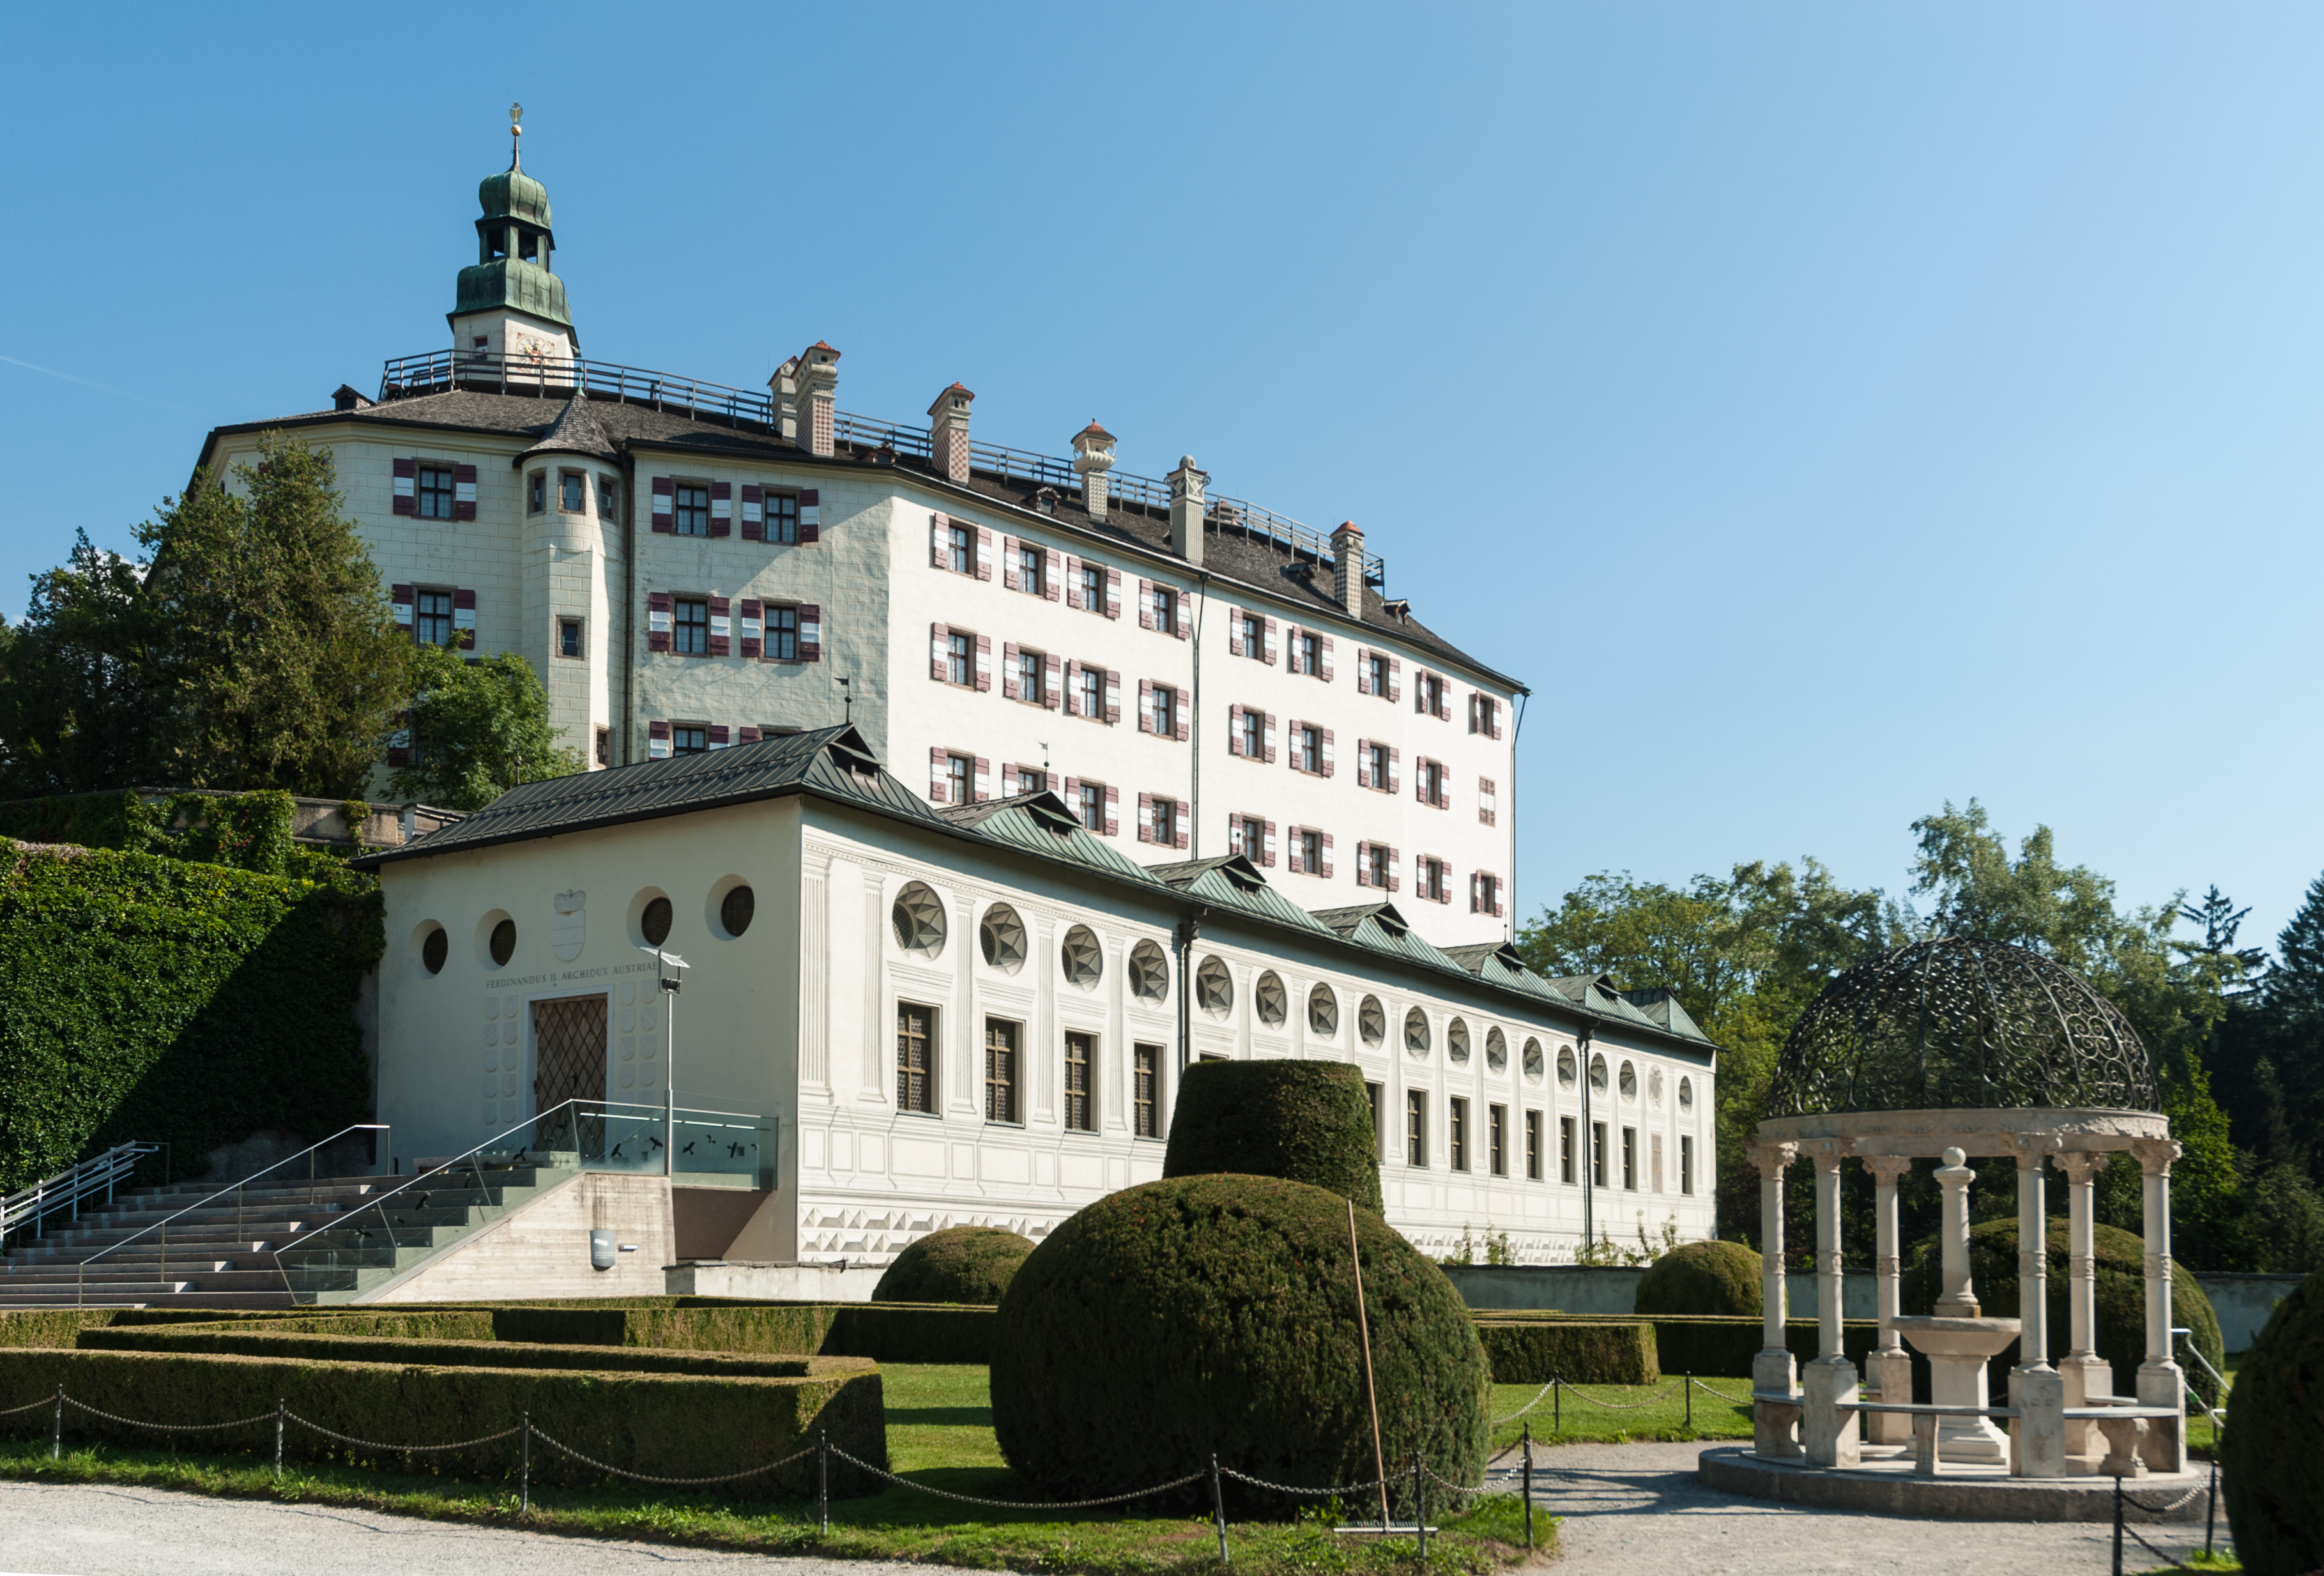 Front view of Ambras Castle